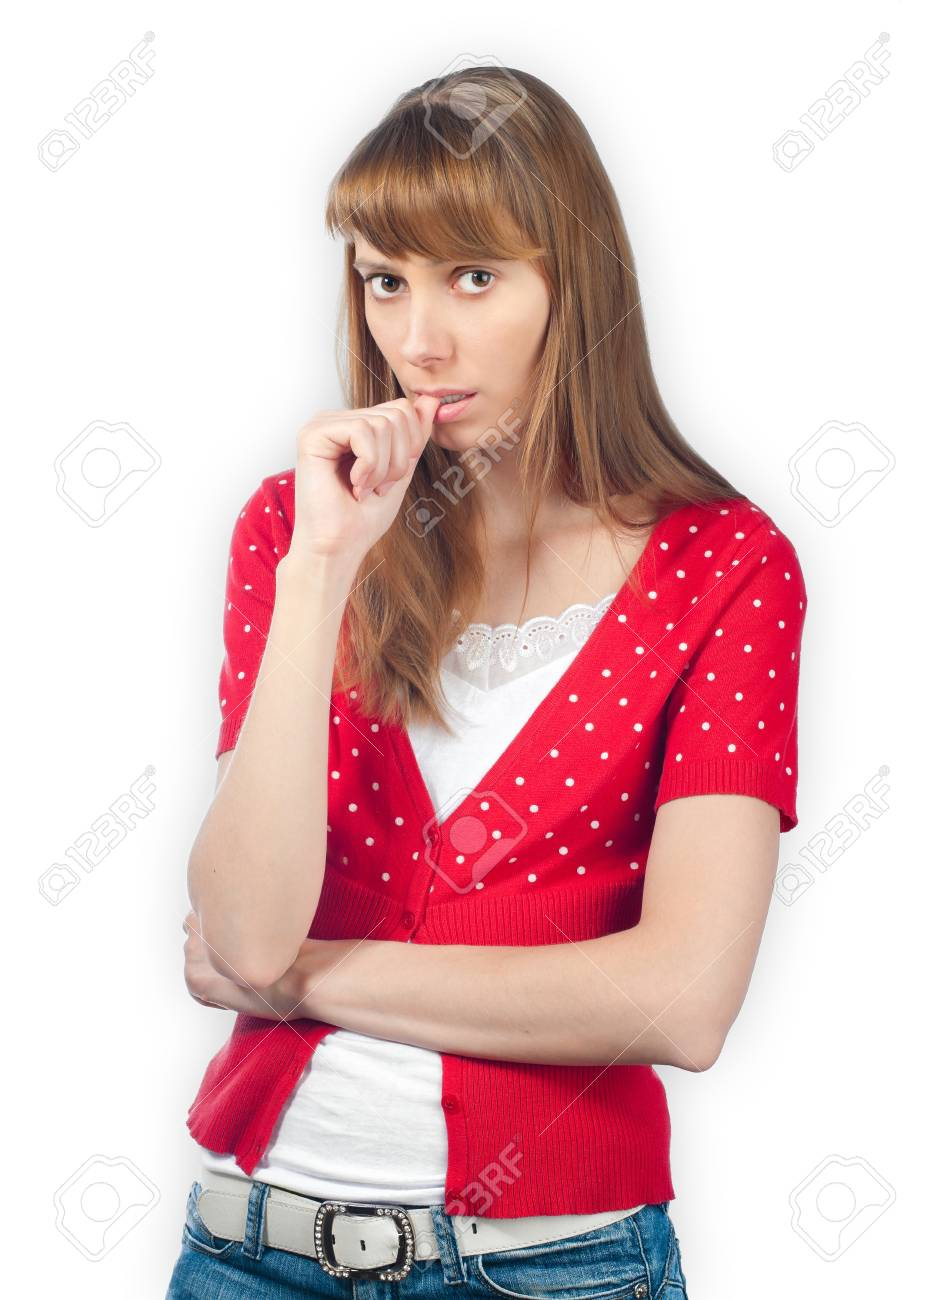 Beautiful worried young woman looking into the camera, finger at her mouth. Isolated on white background. Stock Photo - 15183675